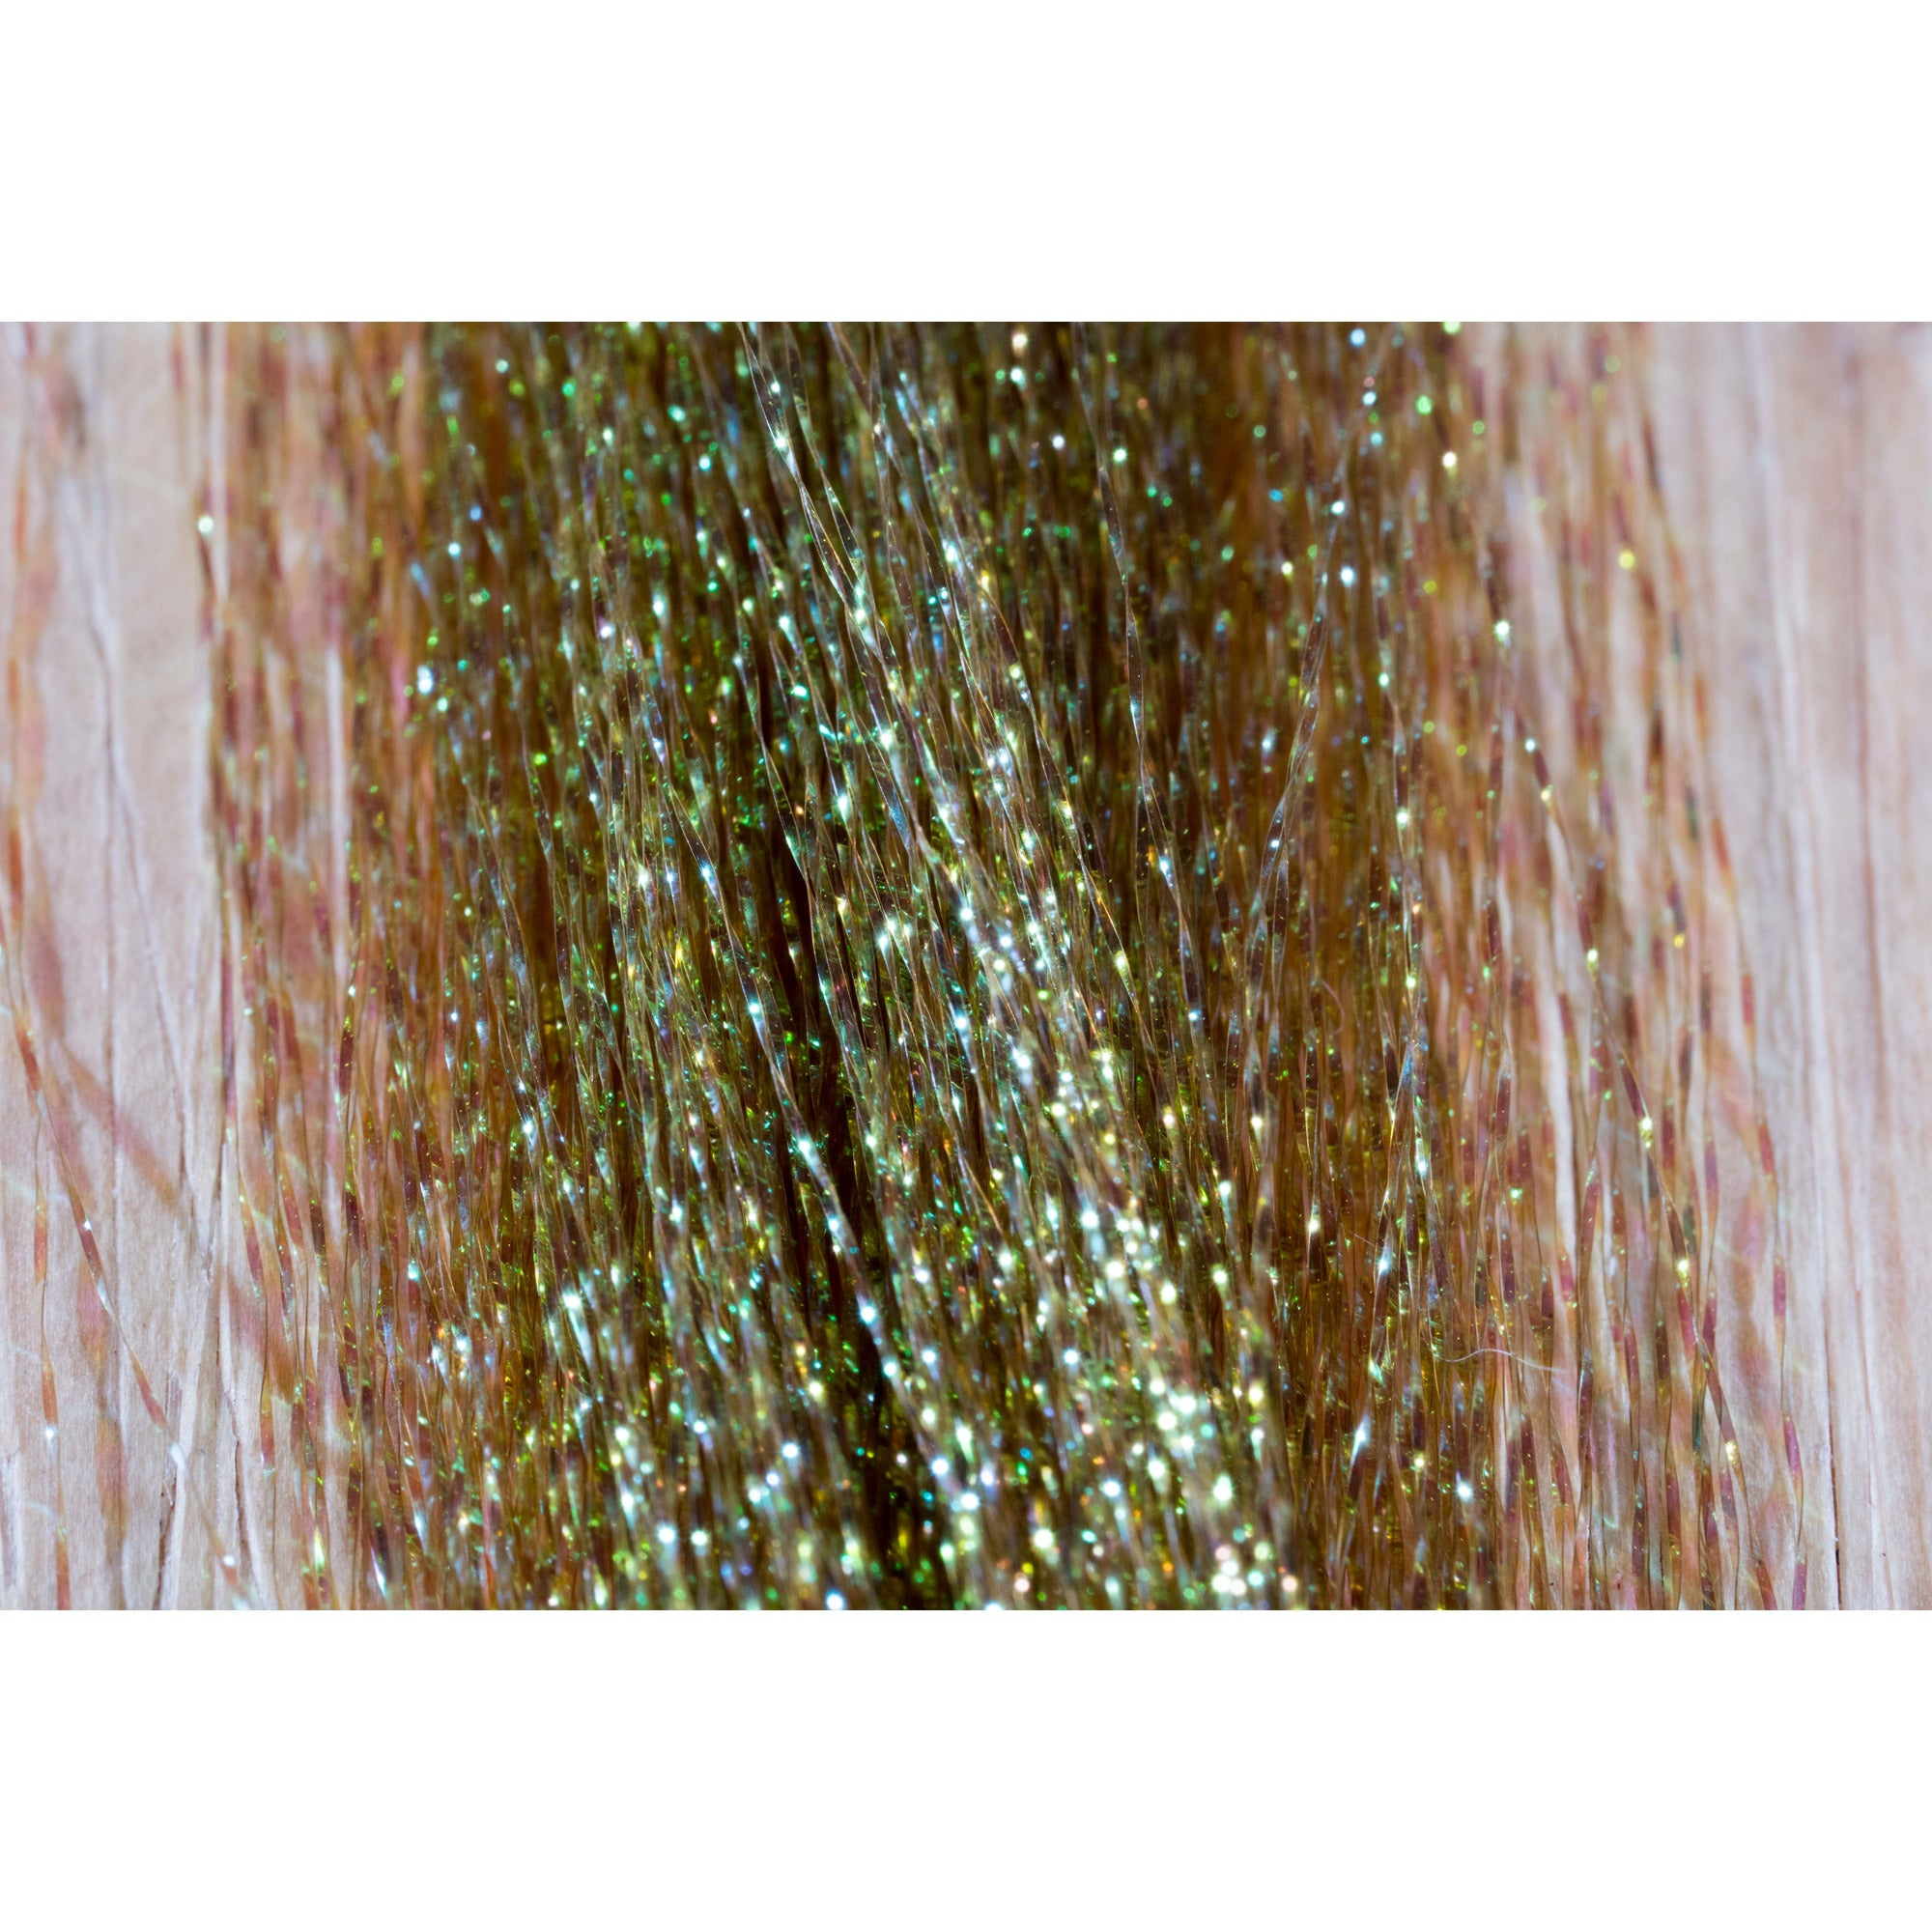 Hareline Rusty Brown Krystal Flash Chenille Fly Tying Material